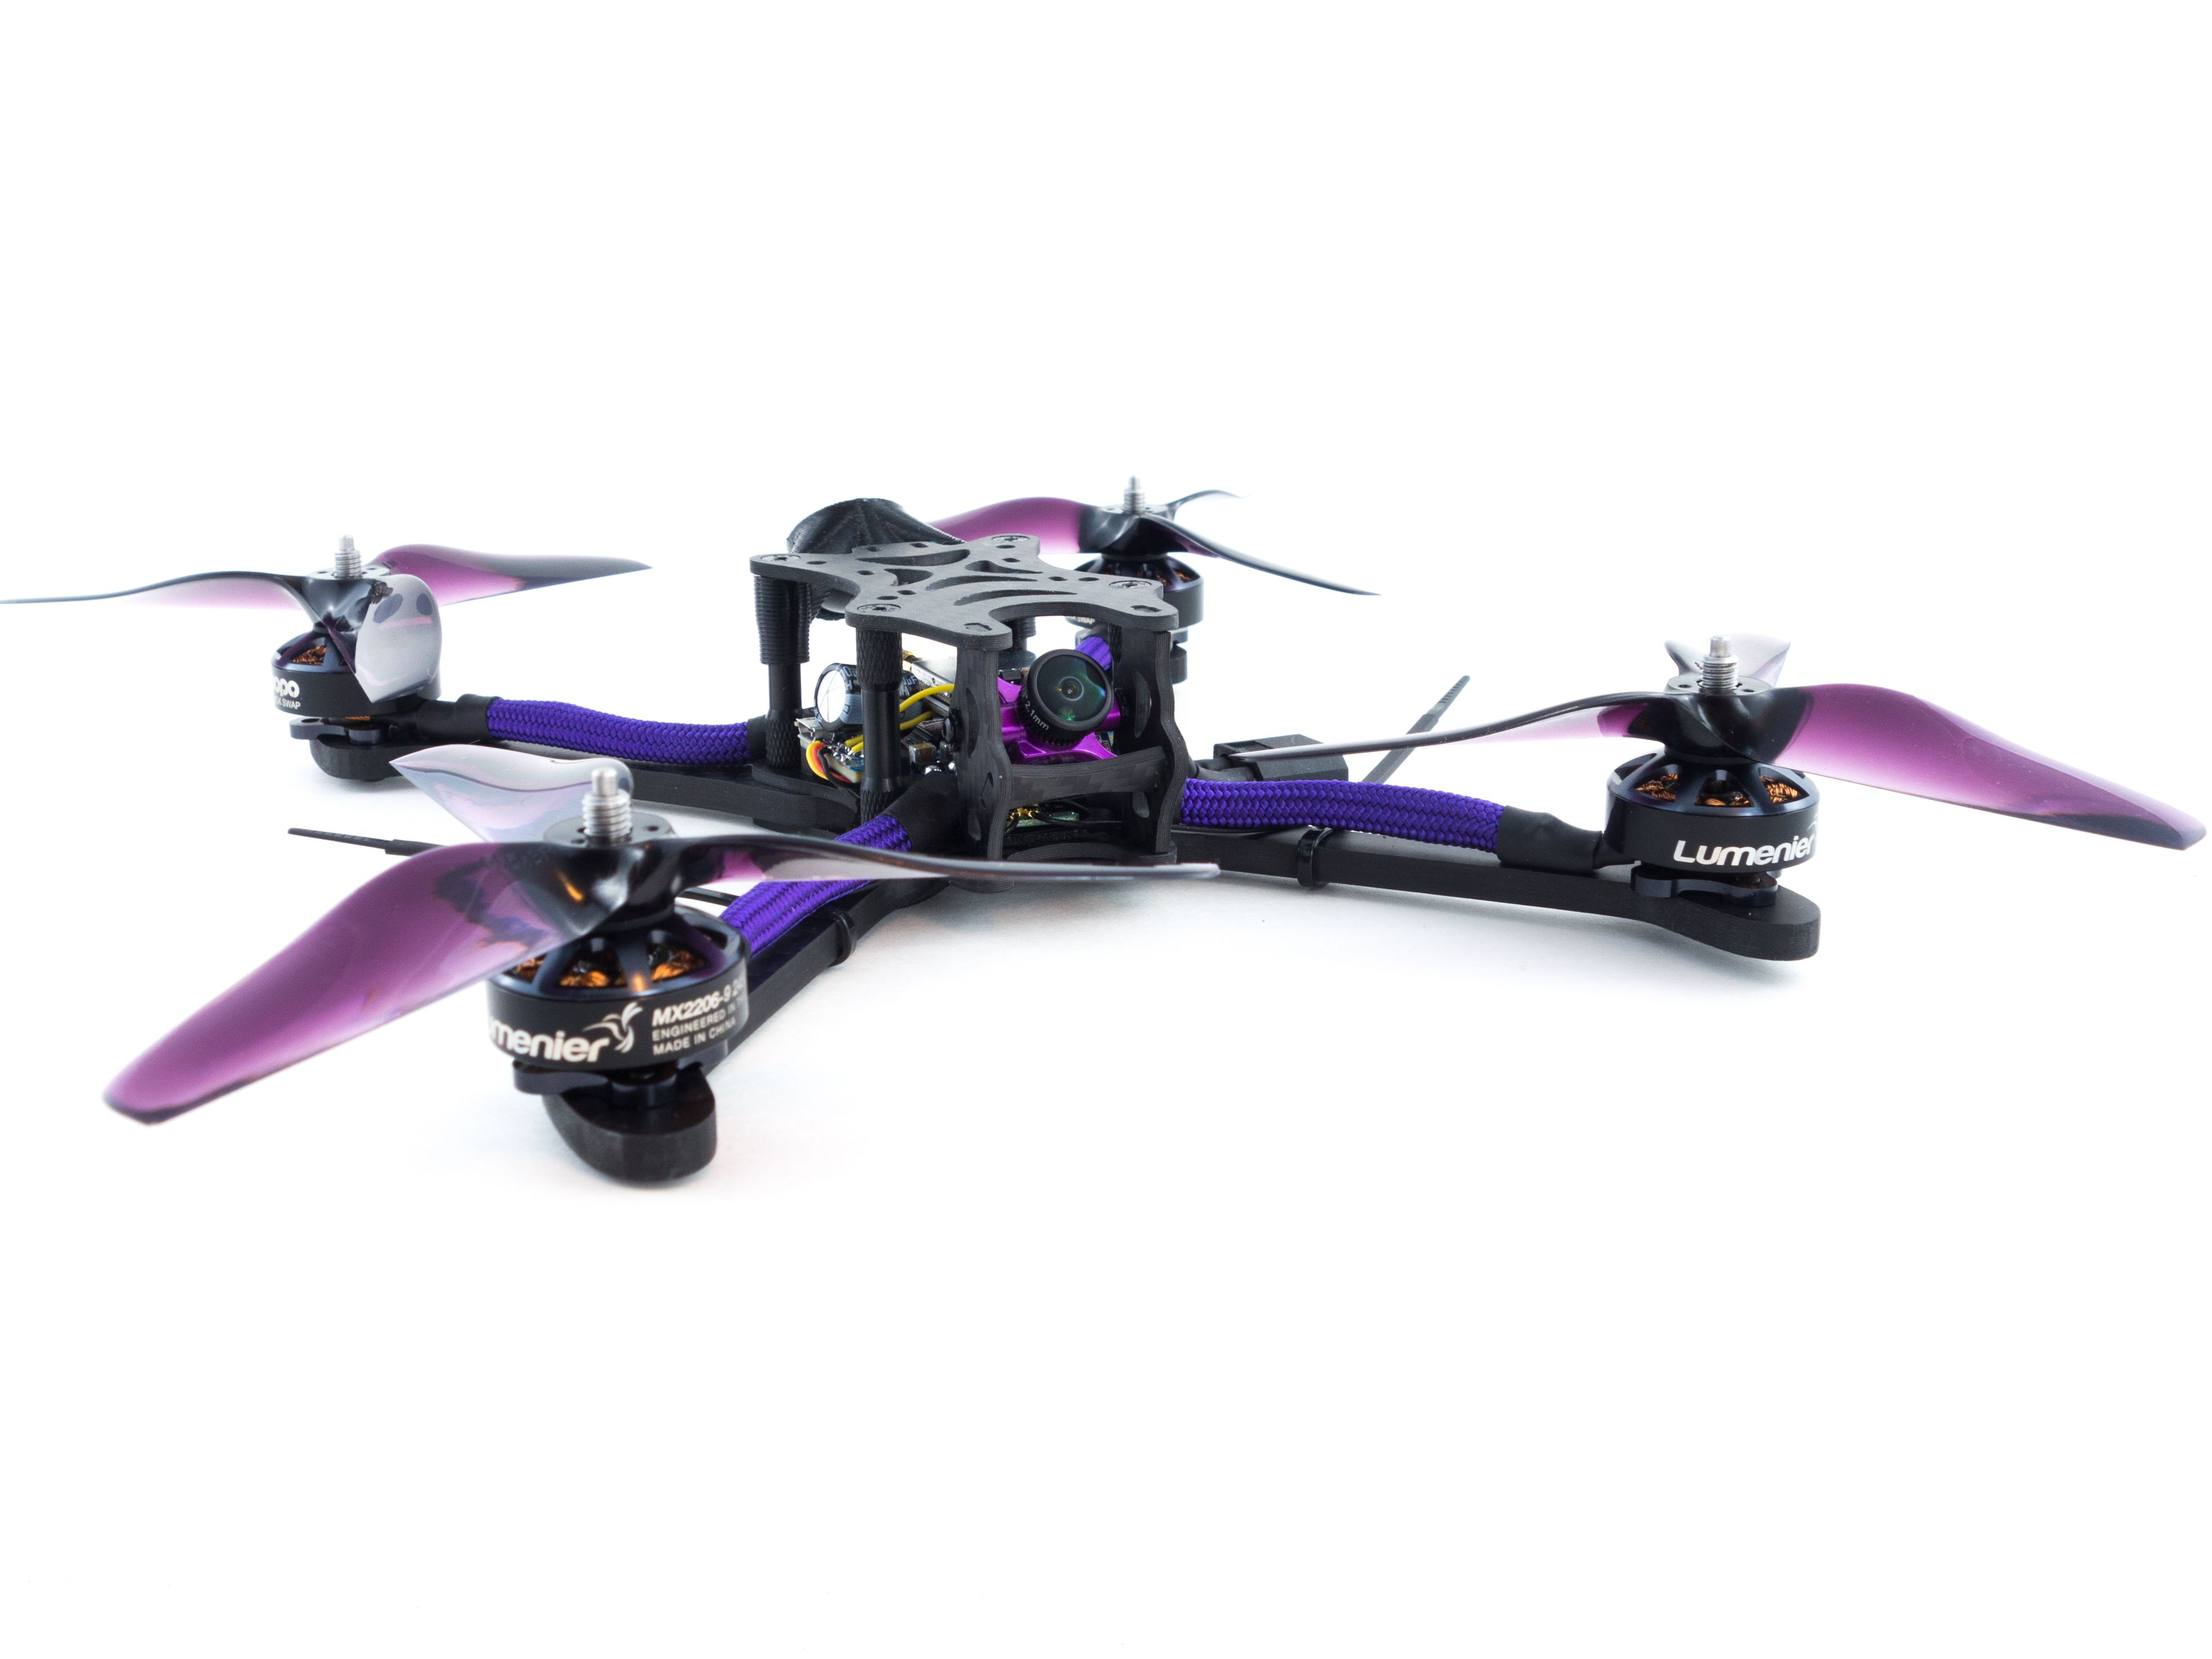 Bannilite How To Build An Fpv Racing Drone